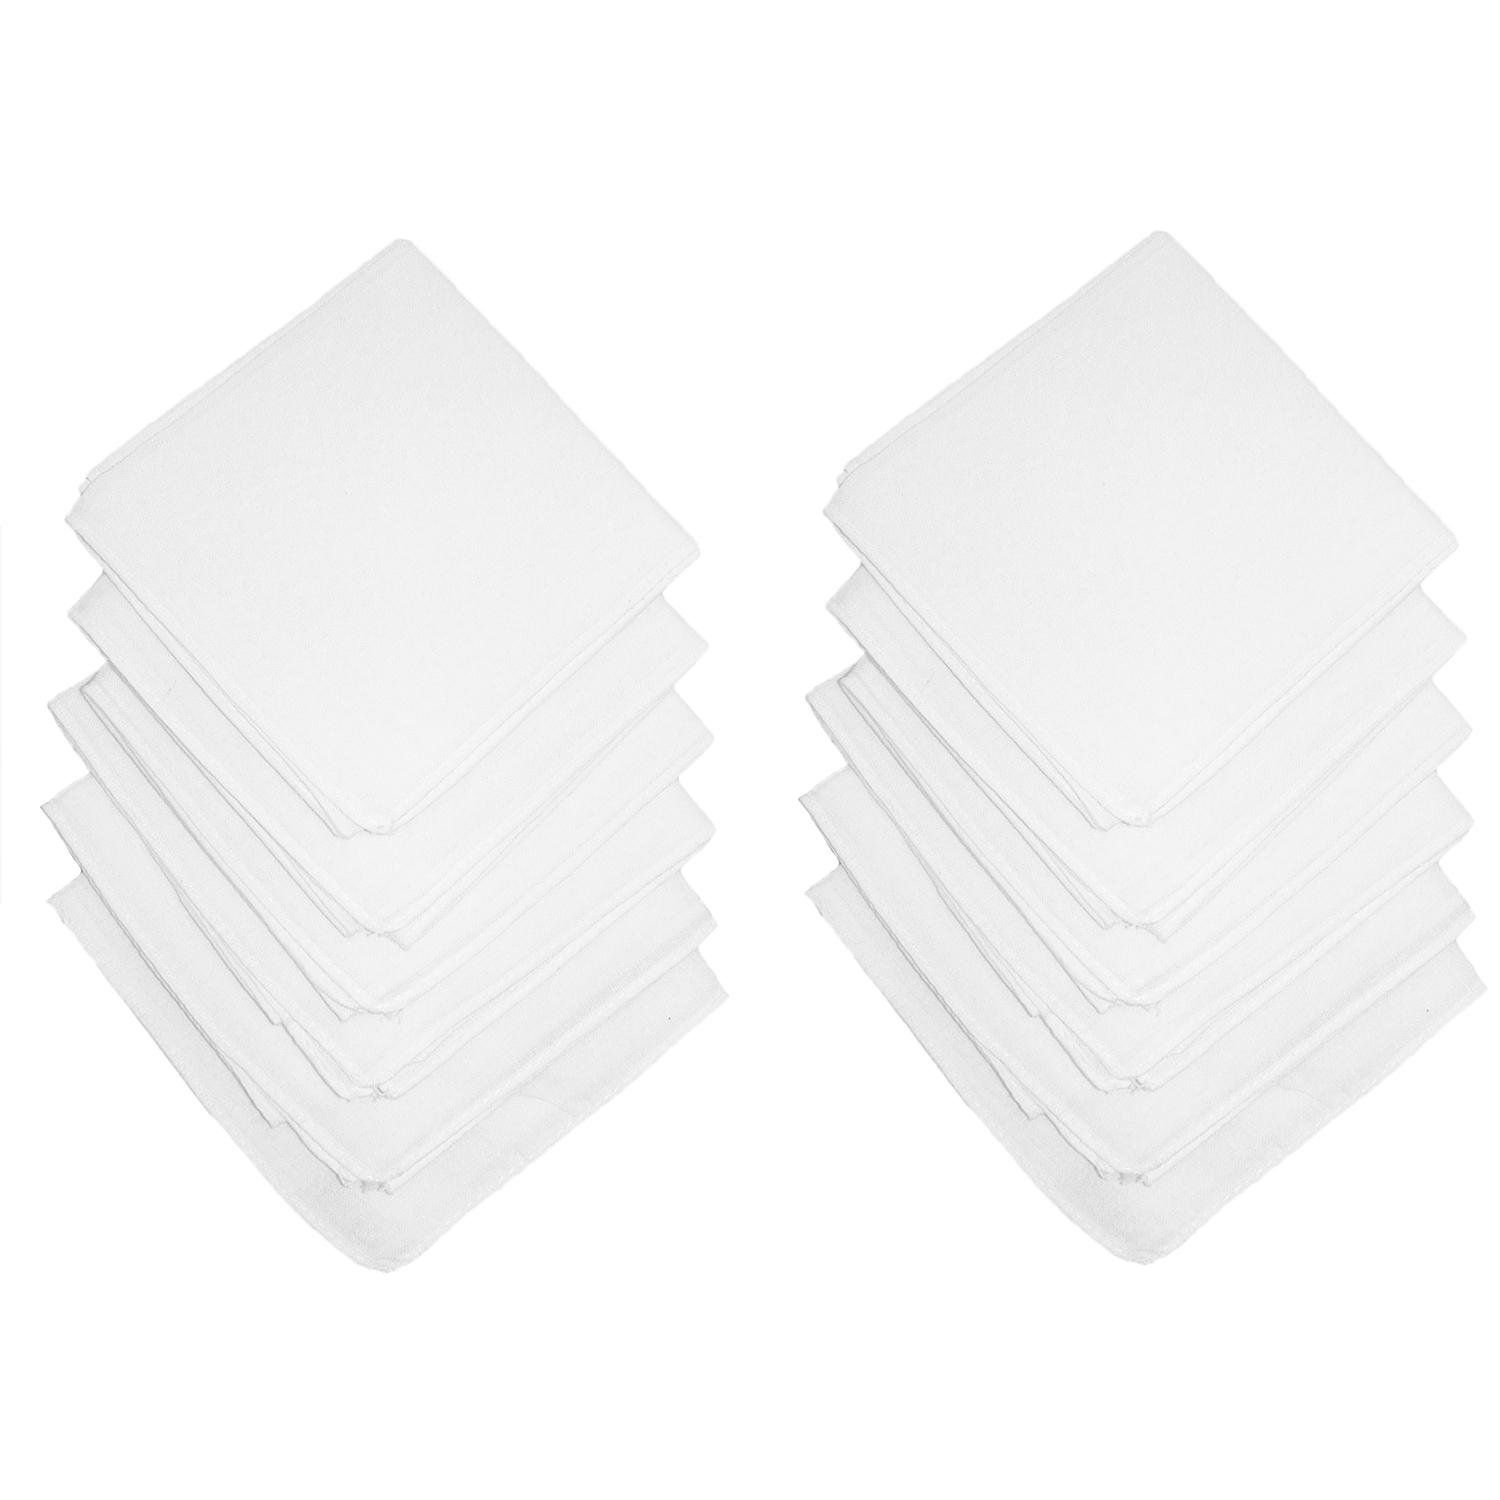 Axxents Unisex Cotton White Handkerchiefs (Pack of 12), White by Axxents (Image #1)